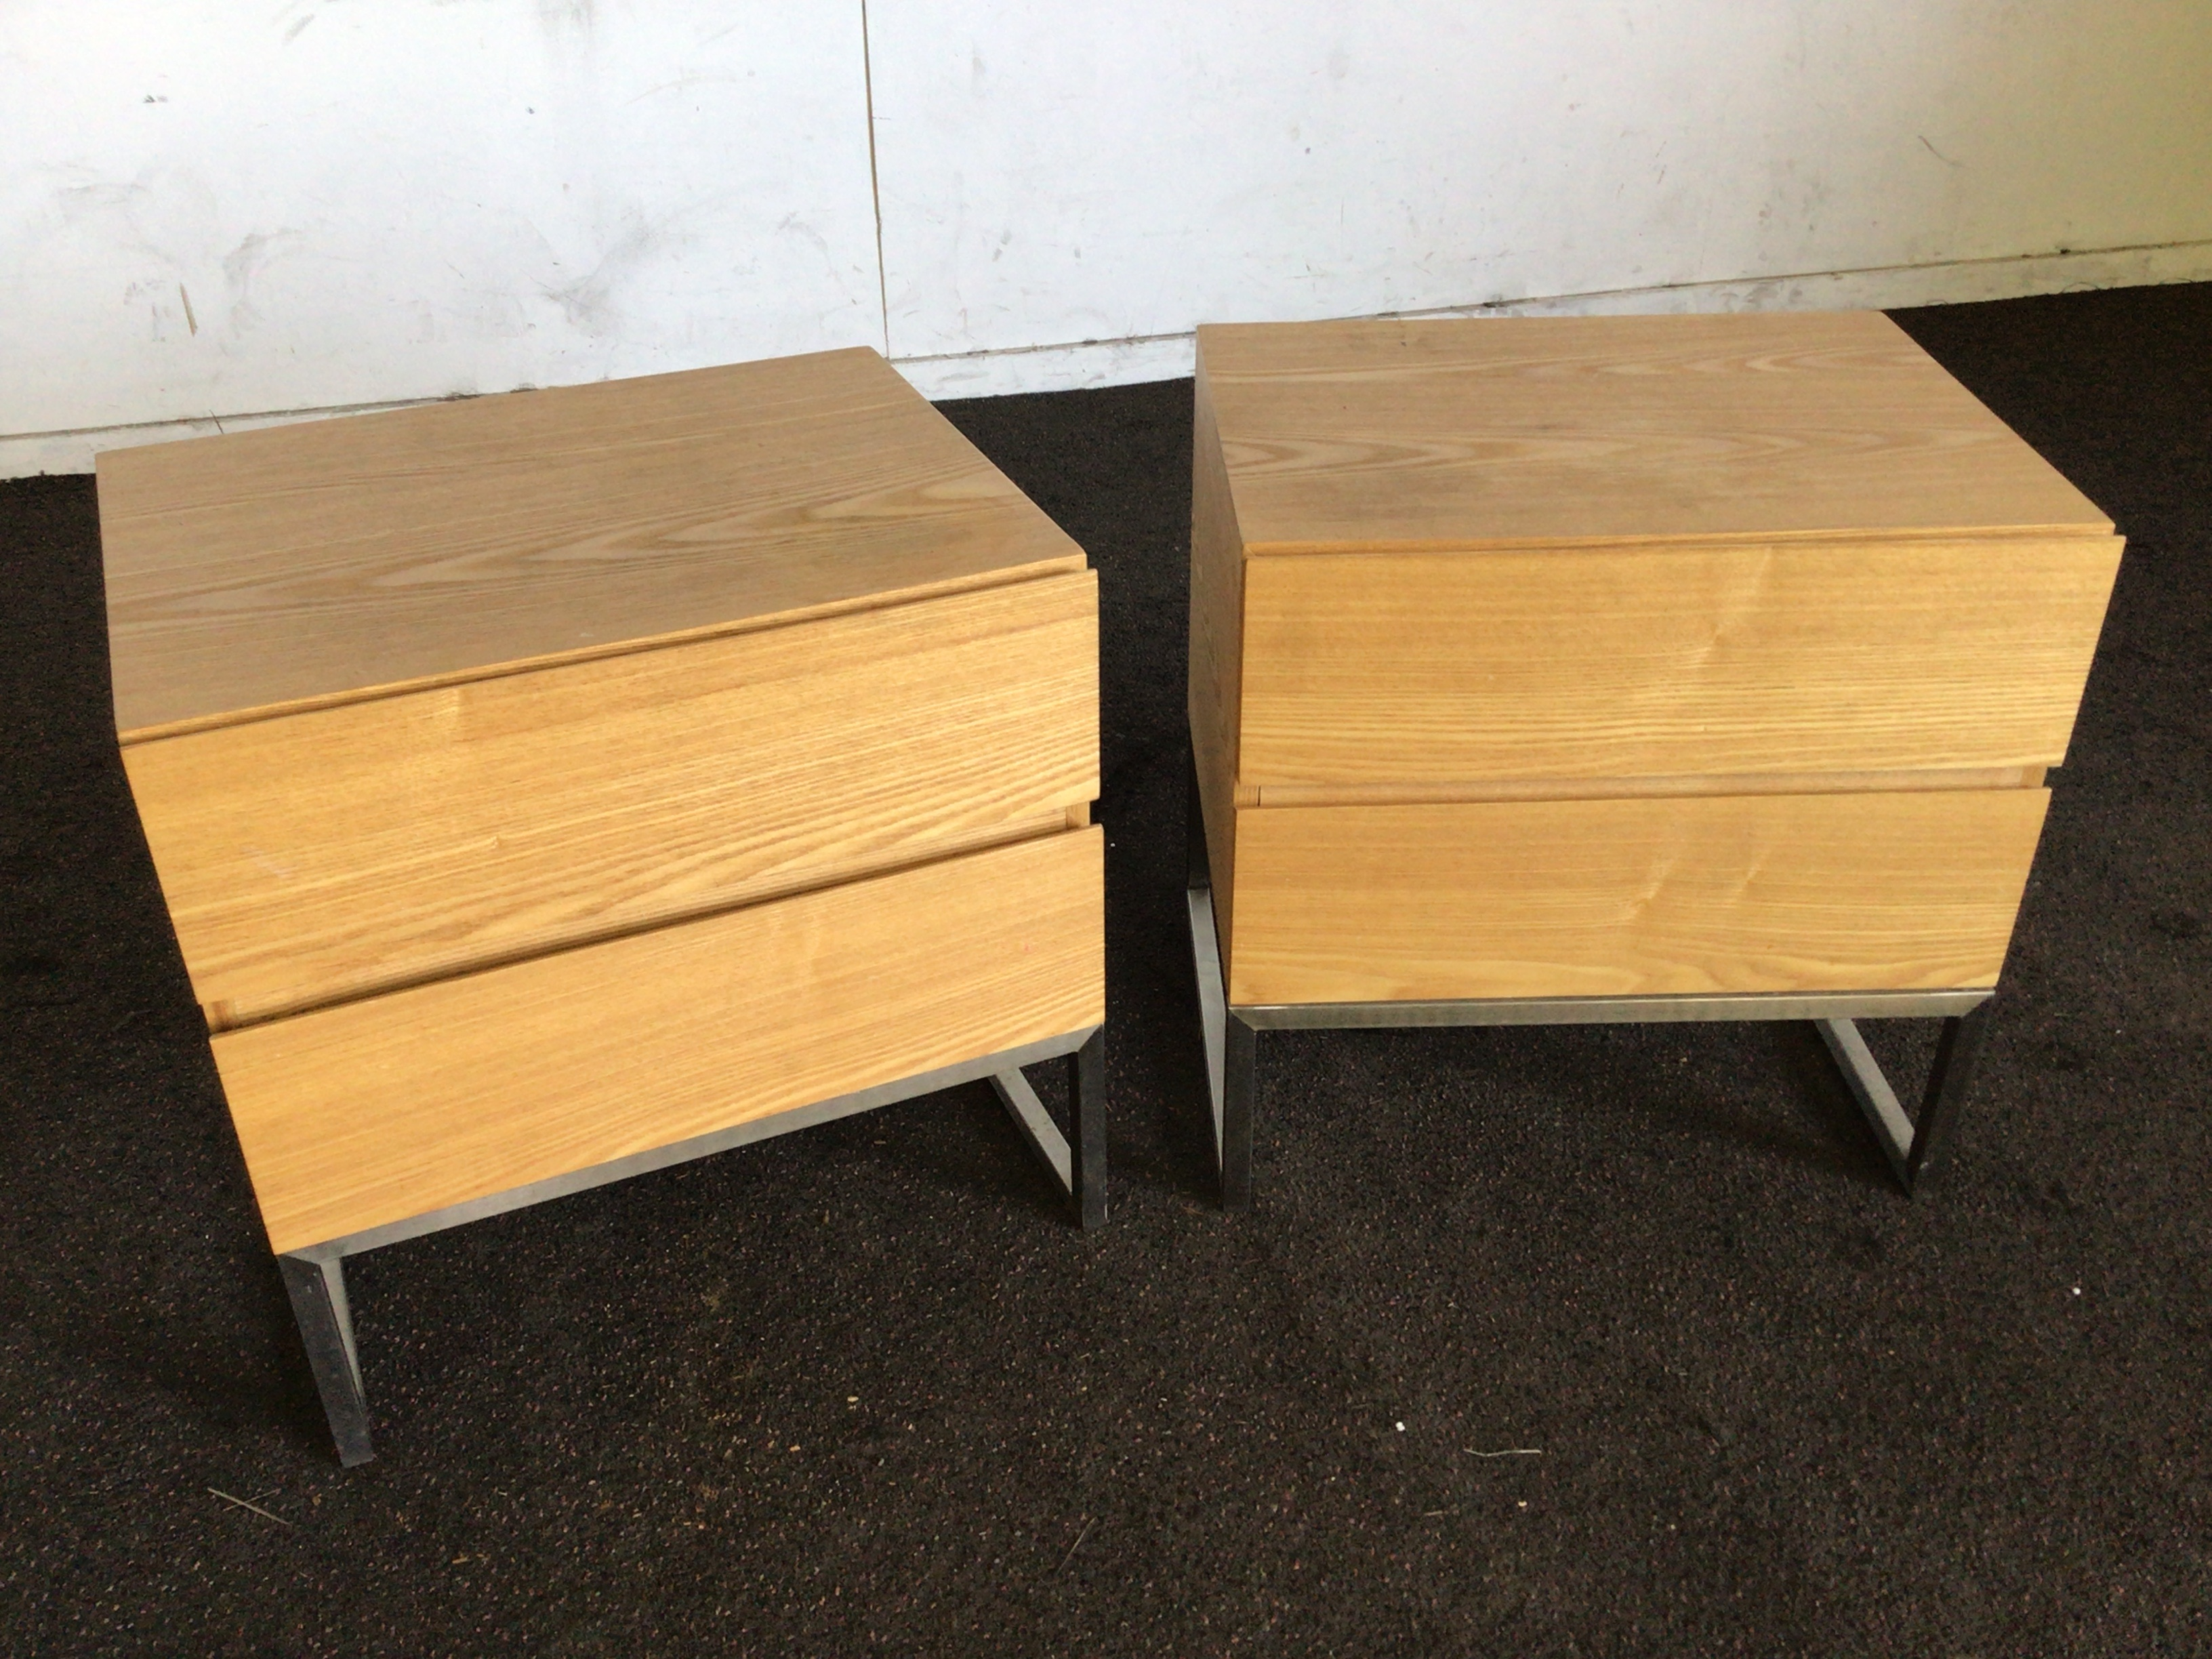 2 x Timber Bedside Tables